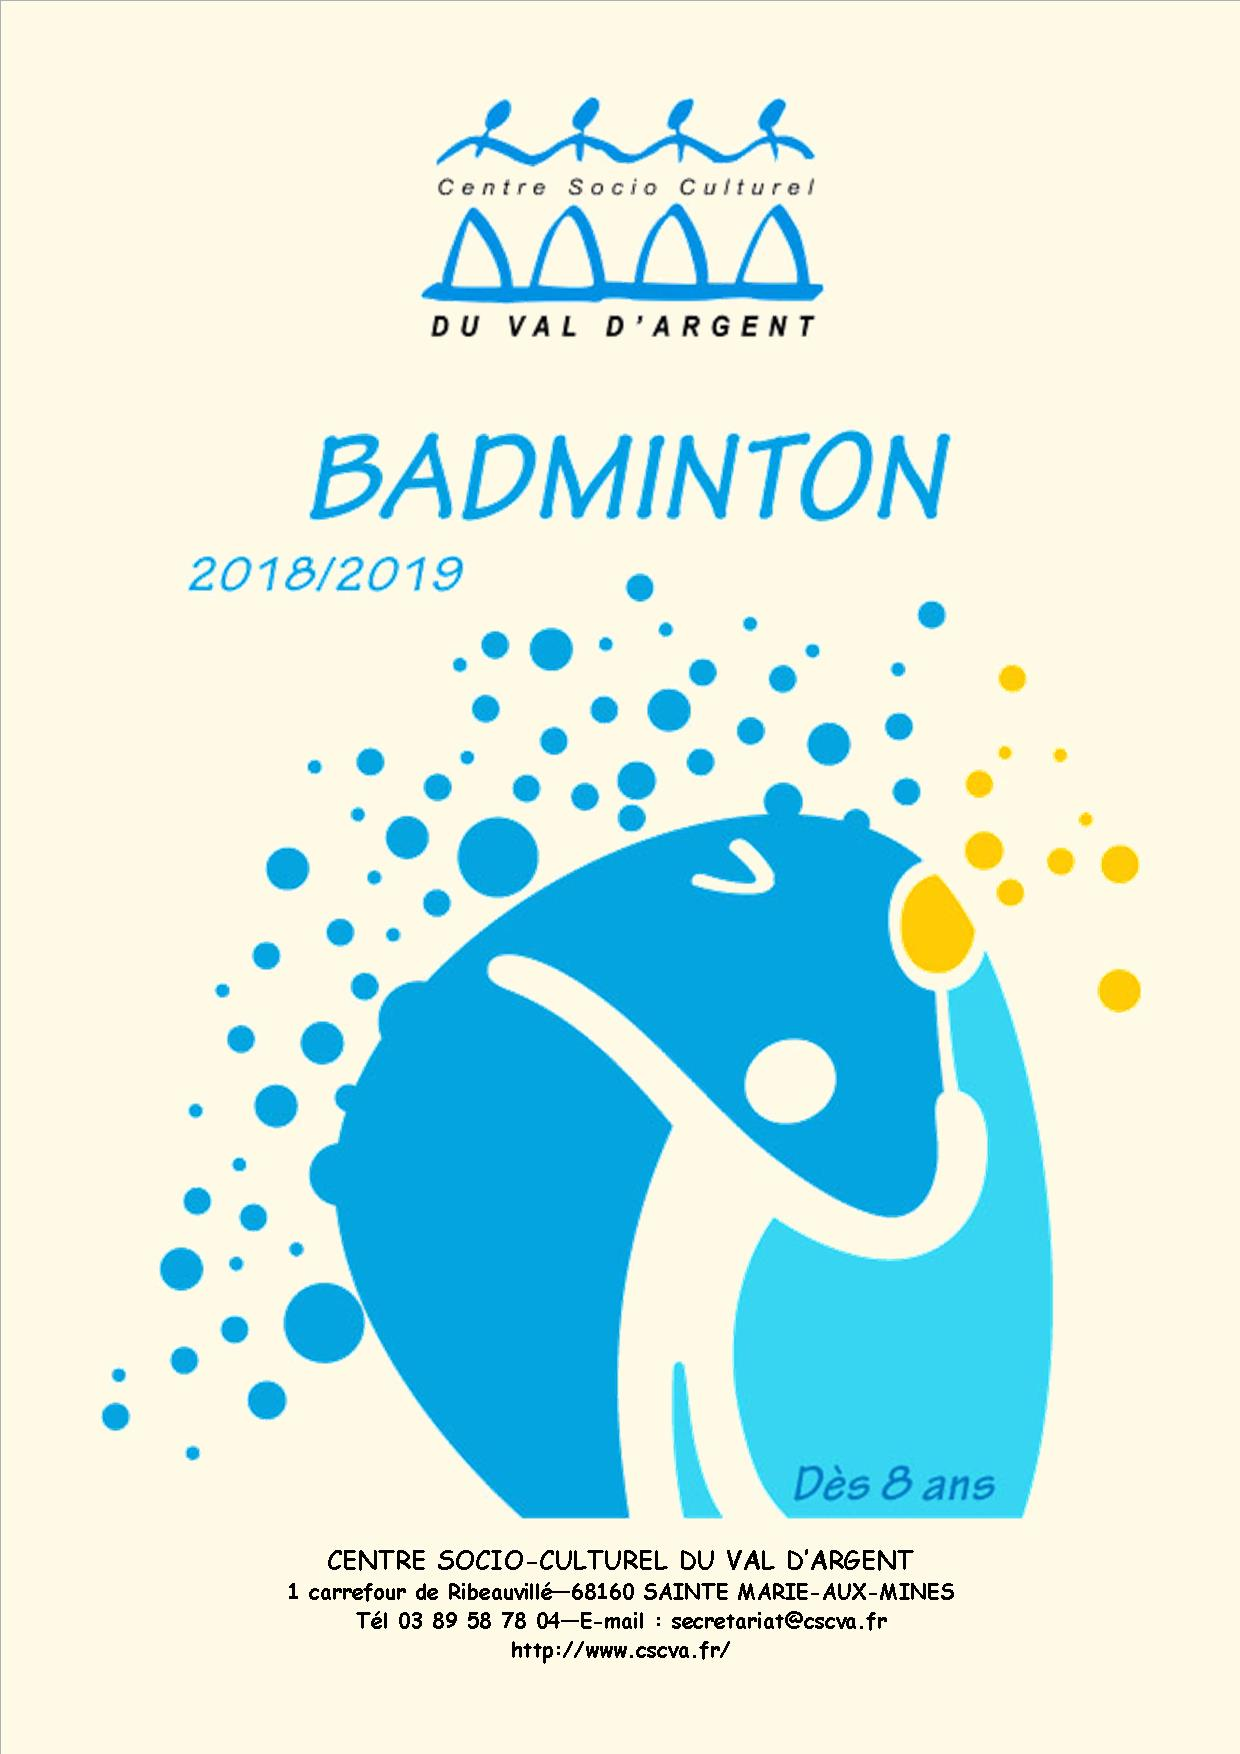 INSCRIPTION BADMINTON 2018 2019